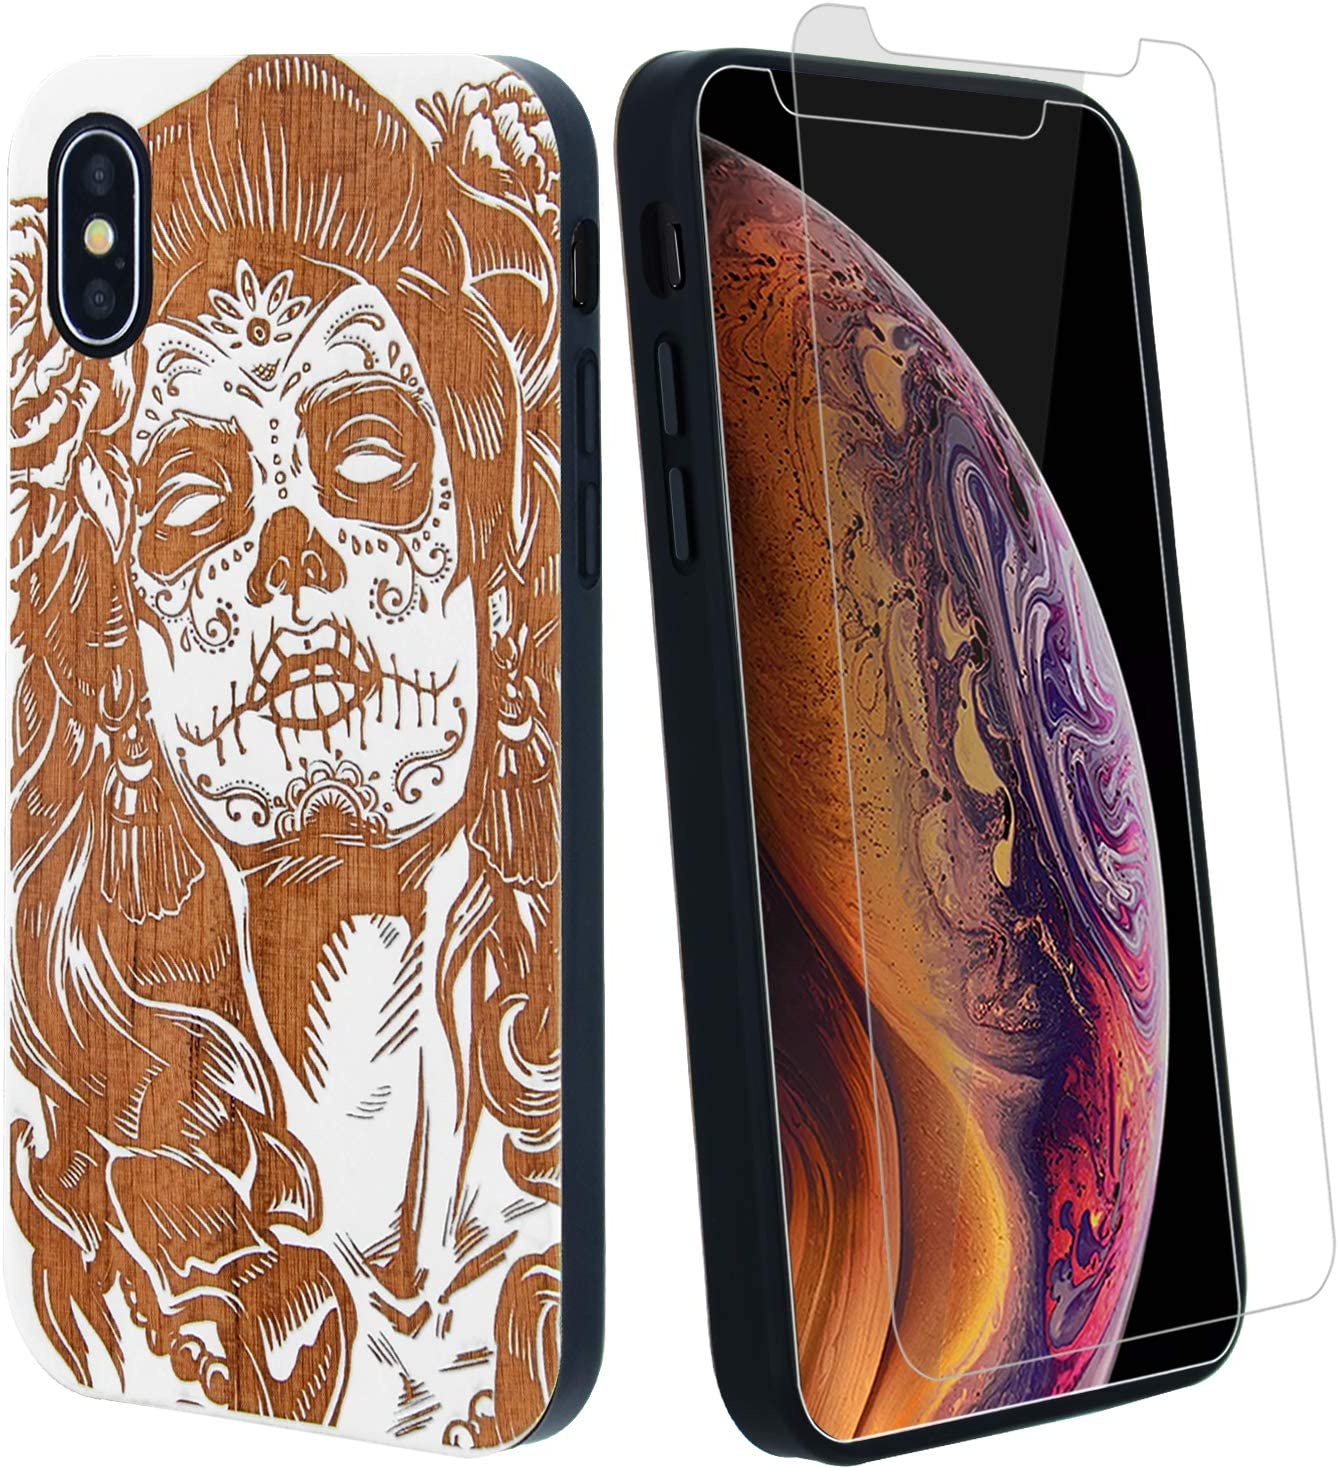 Sugar Skull Lady Girl Wood Phone Case Compatible with iPhone XR Including Strong Glass Screen Protector, Wireless Charging Compatible